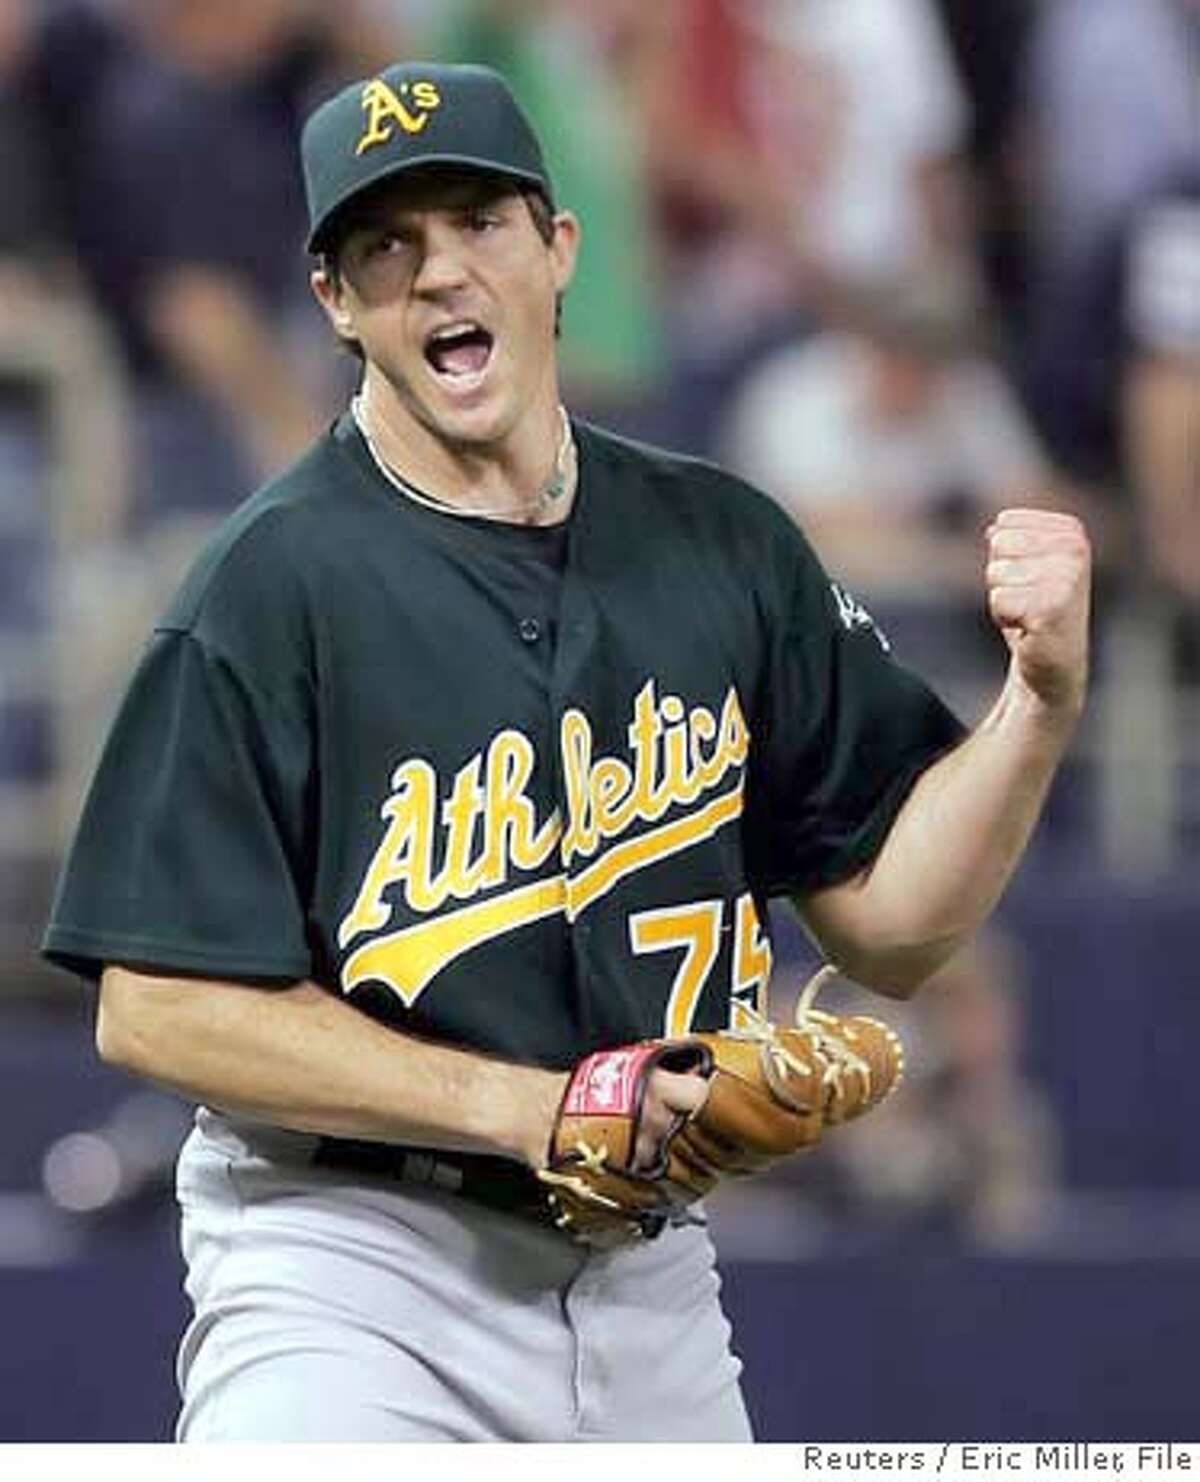 Oakland Athletics starting pitcher Barry Zito reacts to retiring Minnesota Twins batter Joe Mauer to end the eighth inning of Game 1 of the American League Divisional Series in Minneapolis, Minnesota in this October 3, 2006 file photo. Former Cy Young award winning pitcher Zito has signed a seven-year $126 million contract with the San Francisco Giants, the biggest ever for a Major League Baseball pitcher, local media reported on December 28, 2006. REUTERS/Eric Miller/Files (UNITED STATES) 0